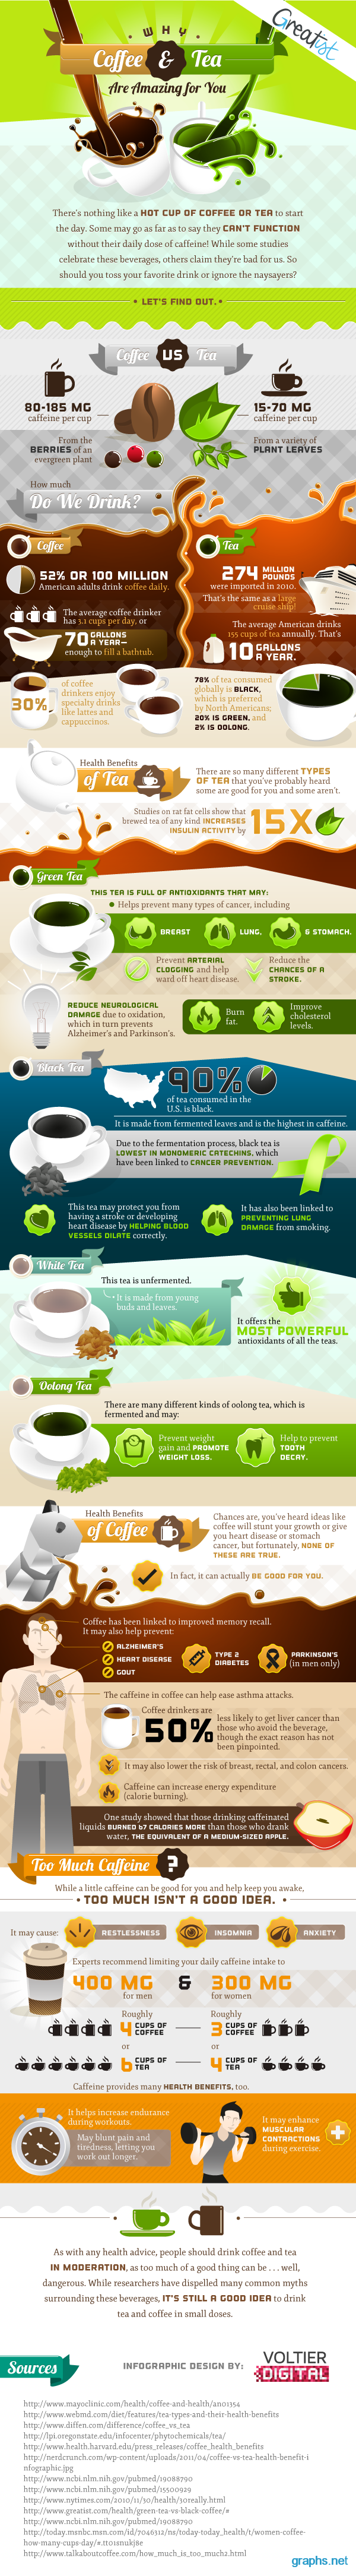 coffee vs. tea facts